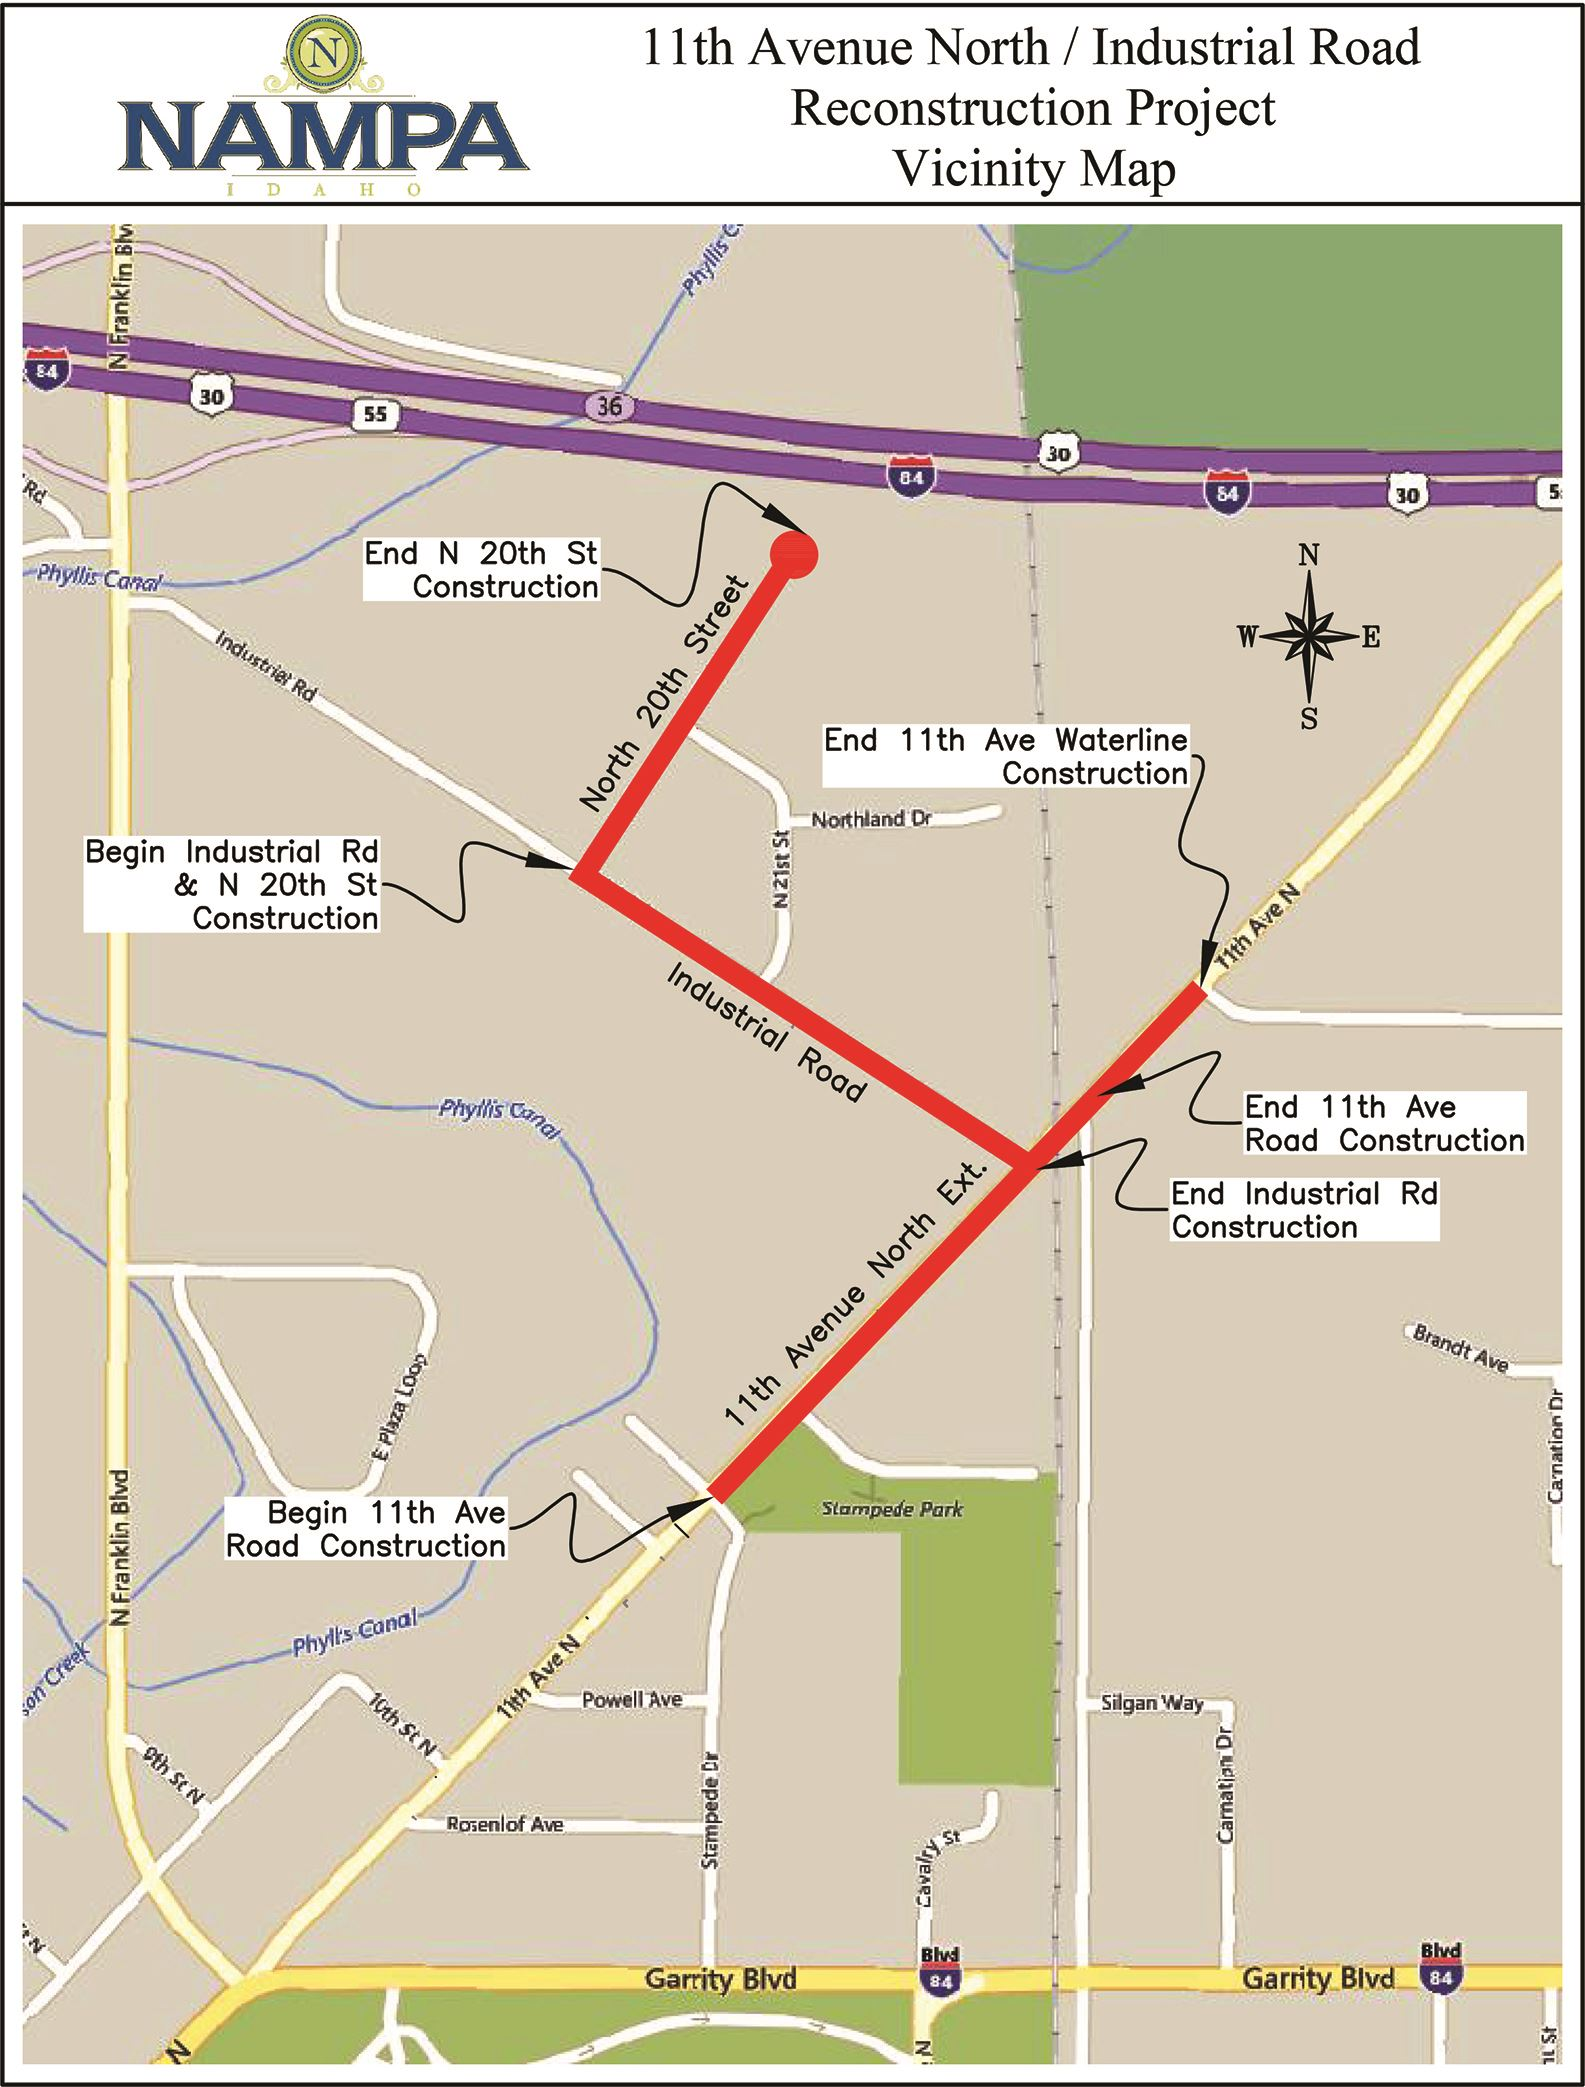 Map of 11th Ave Industrial Road construction area